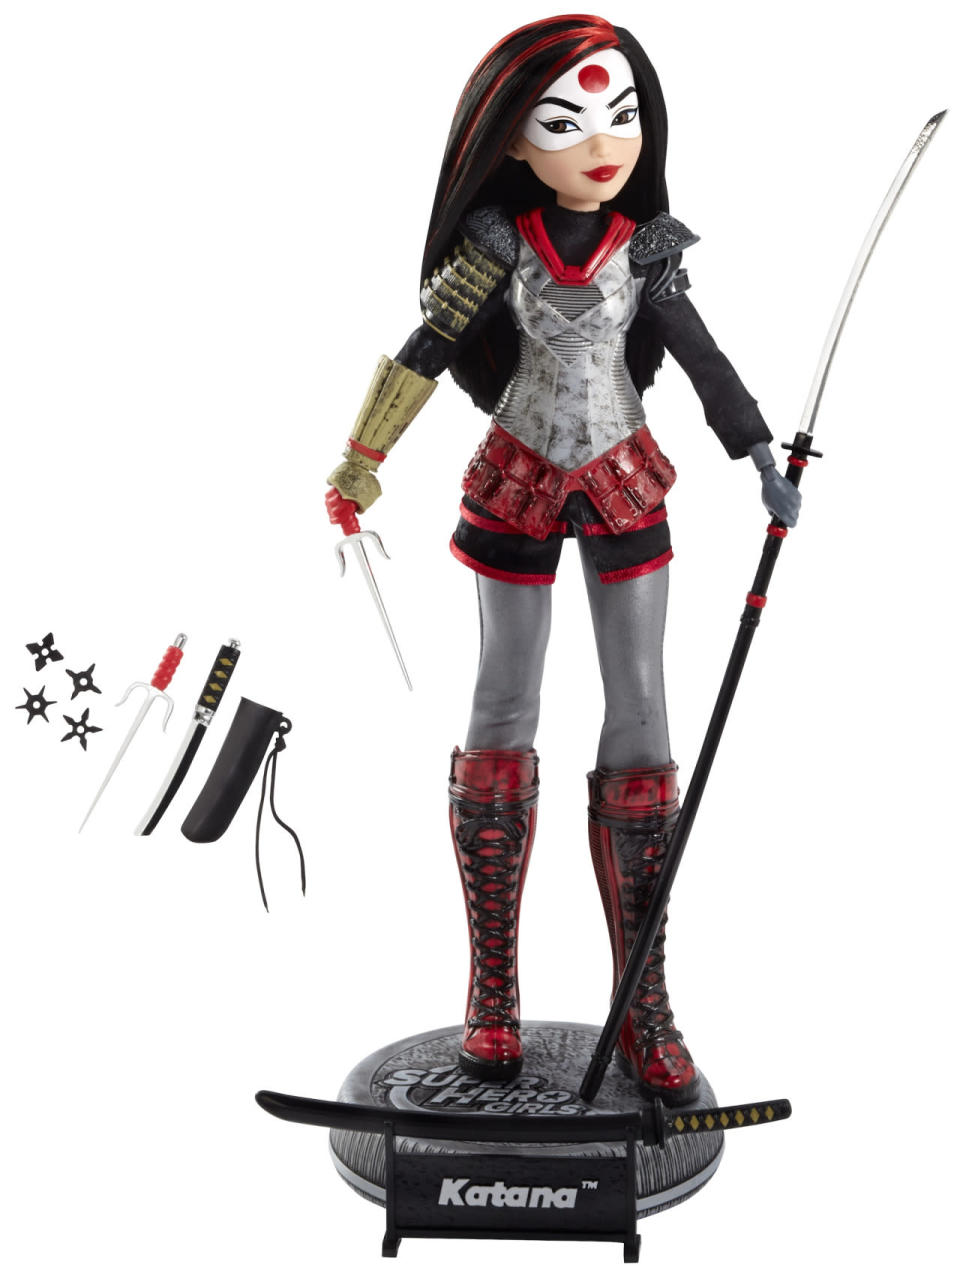 <p>One of the actual heroes who tags along with the otherwise villainous Squaddies, Katana is depicted here in the style of DC's <i>Super Hero Girls</i> line of toys, comics, and shorts. The 12-inch doll is armed with her trademark sword and other tools of the trade. ($40) </p>